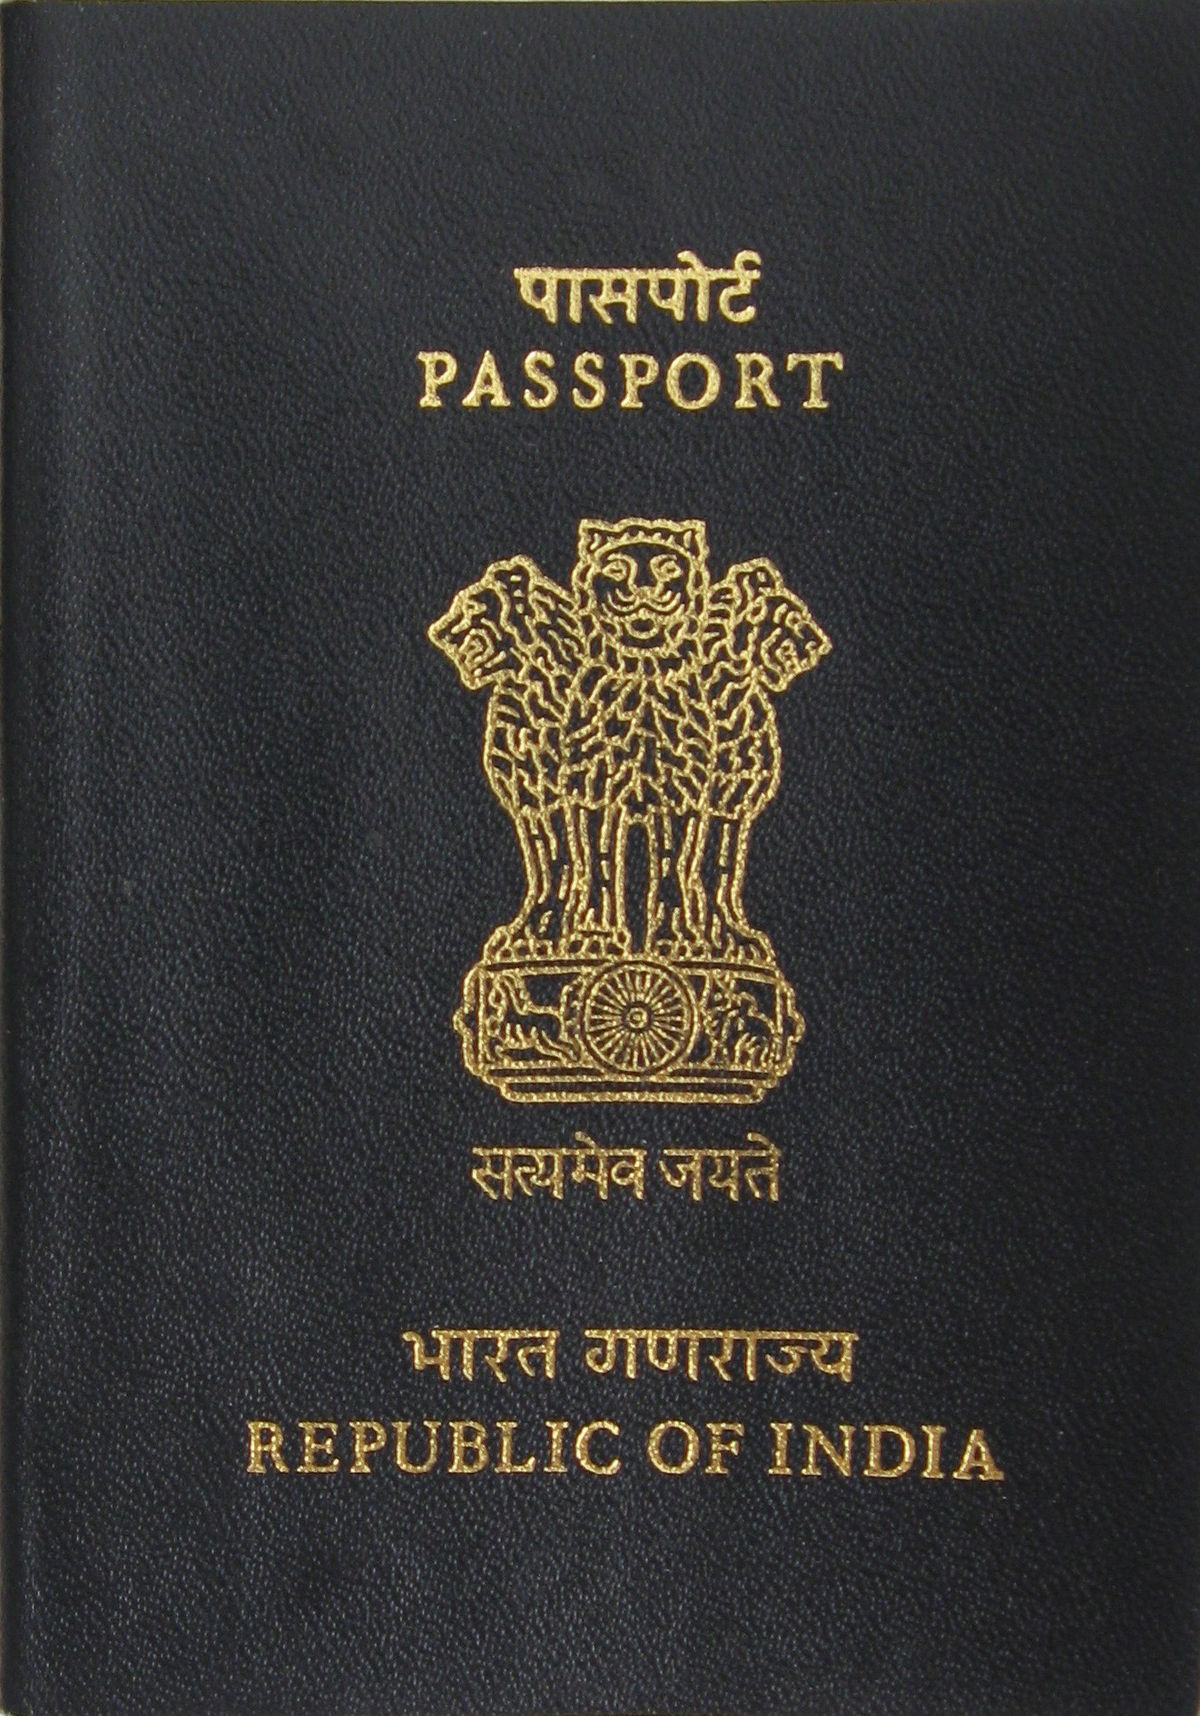 List of Passport fices in India